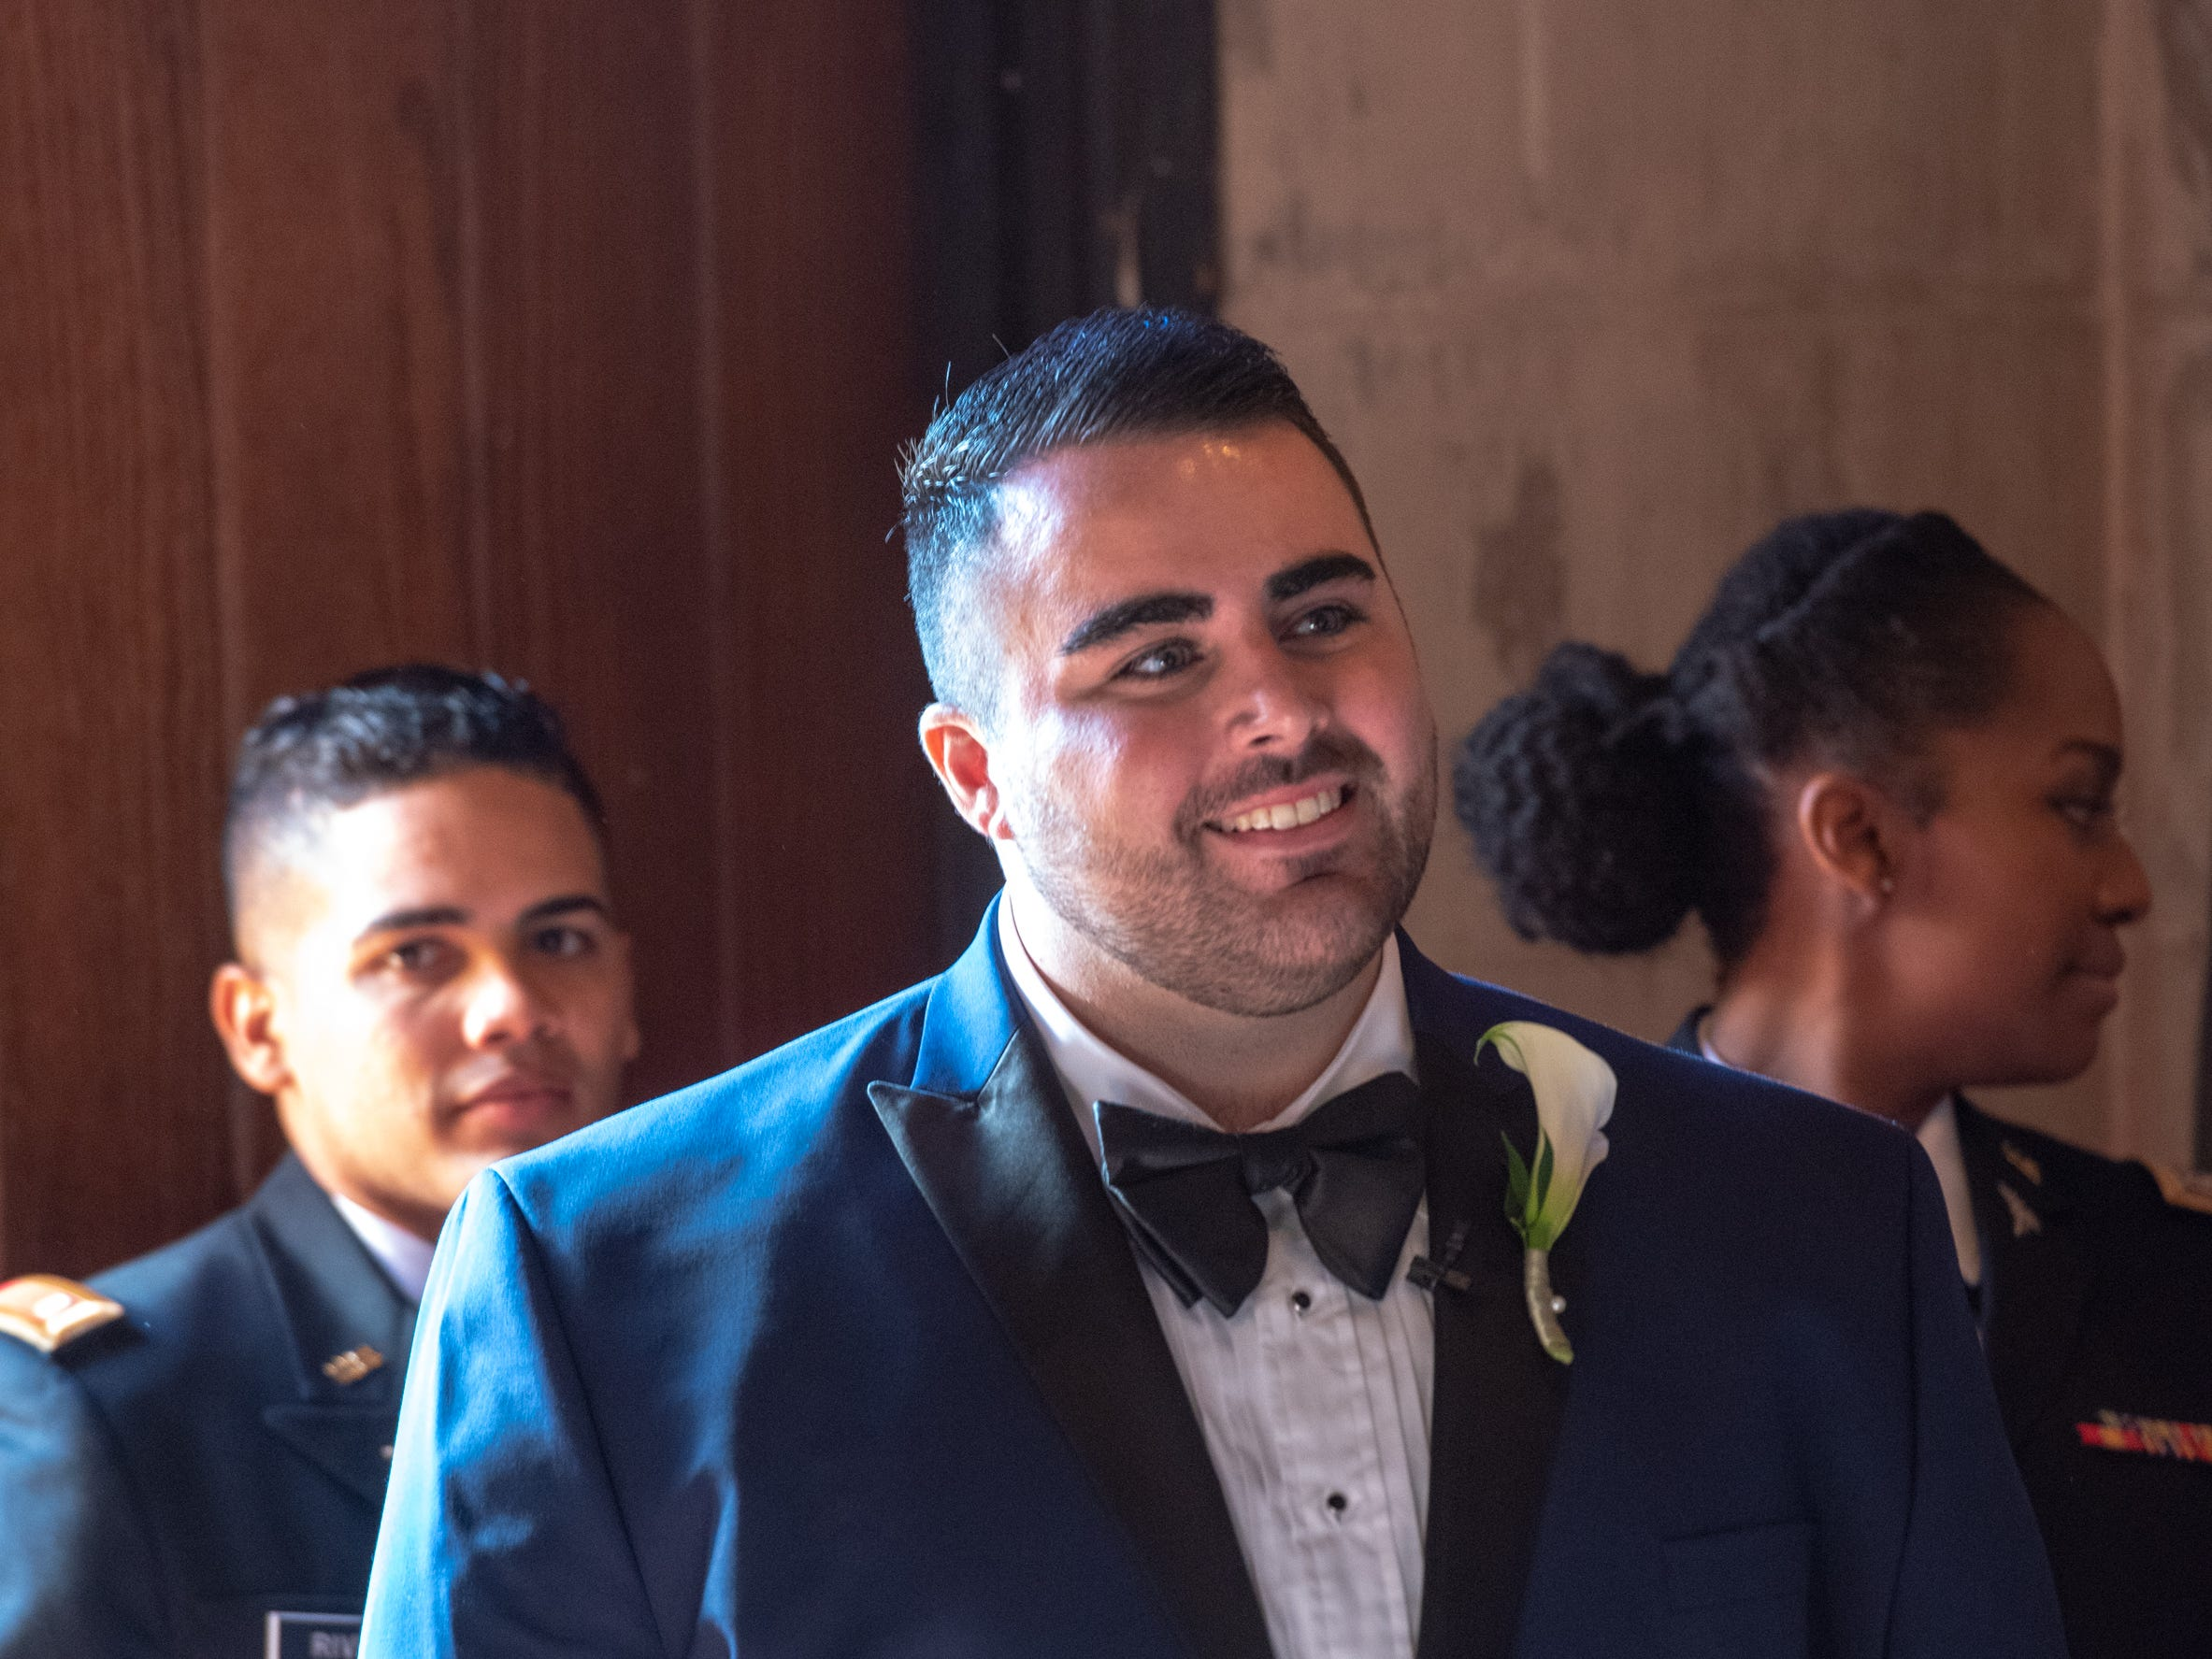 Christian Fuscarino, (pictured here) Executive Director of Garden State Equality, and U.S. Marine Corporal Aaron Williams were married at Trinity Church in Asbury Park on Sunday, November 11, 2018.